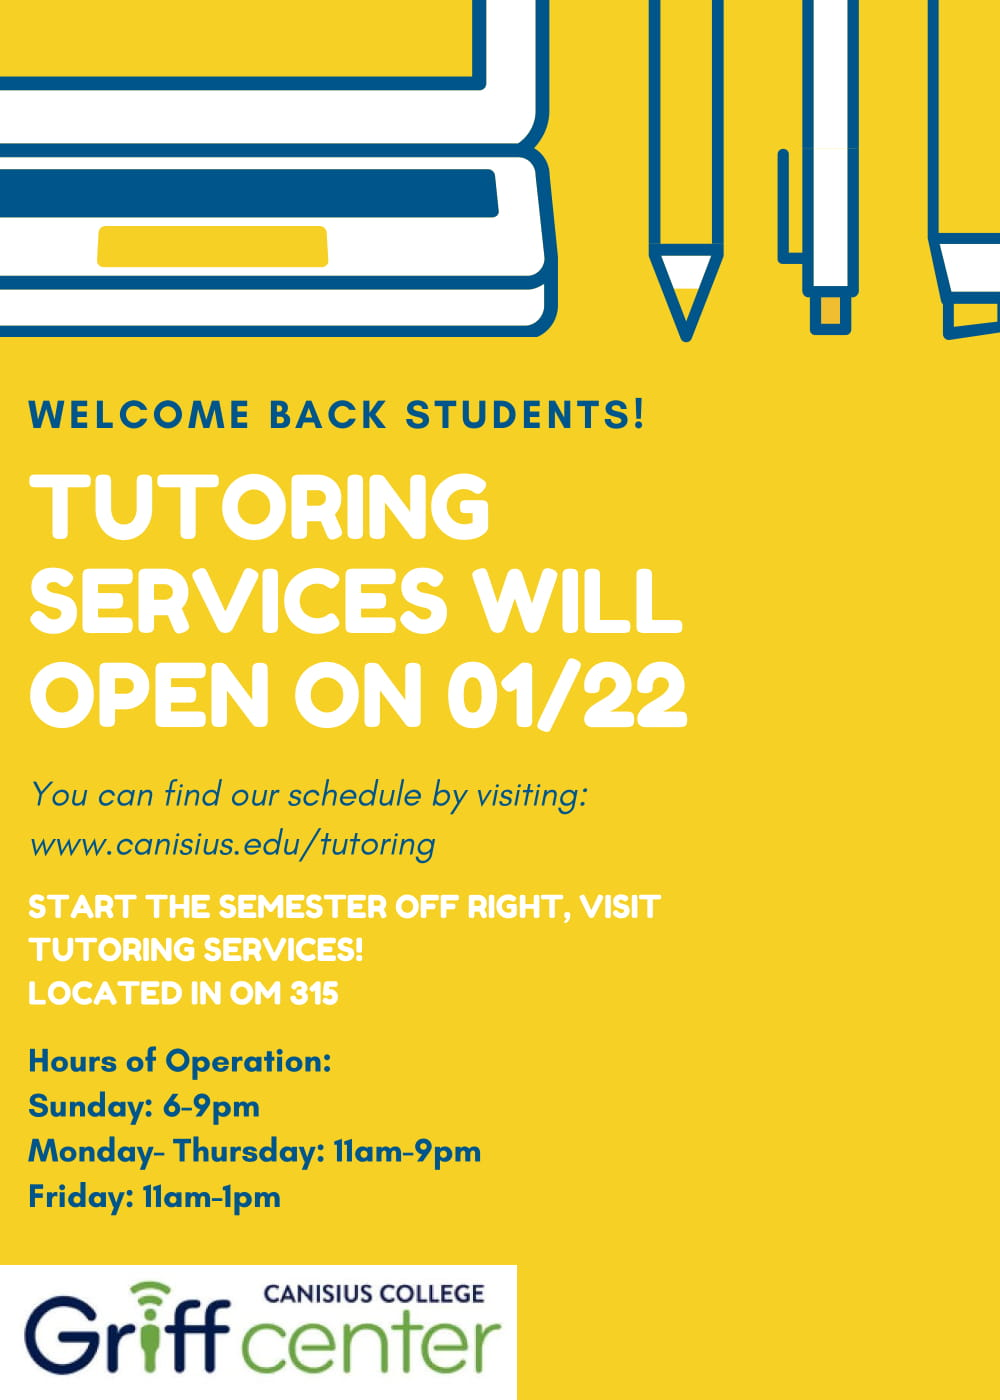 Welcome back Tutoring Flyer -1.jpg